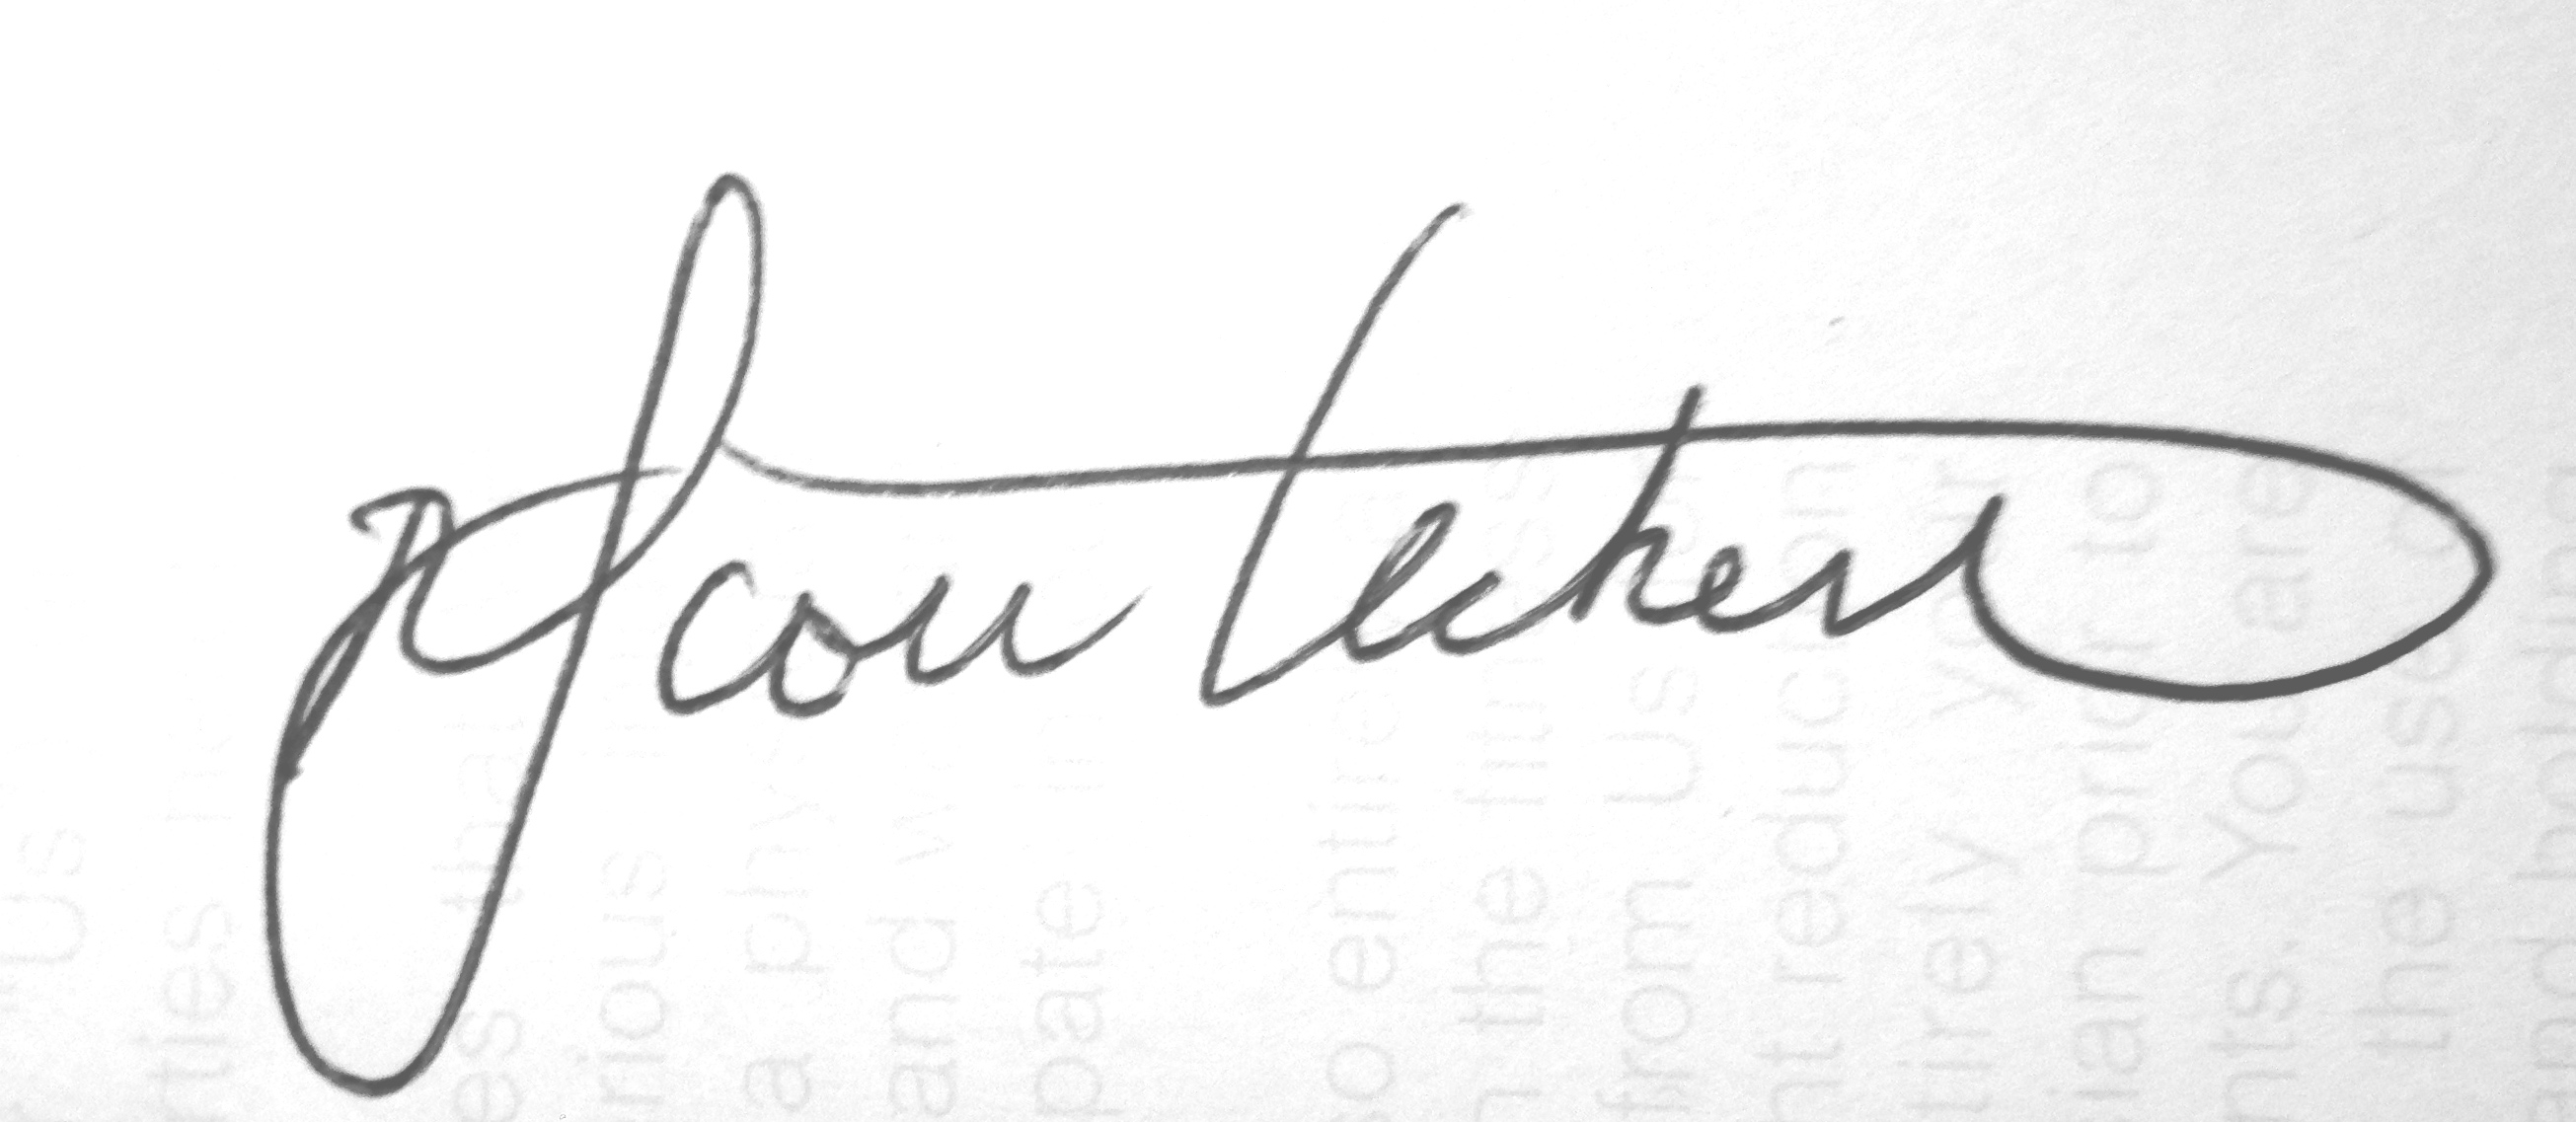 Scott Heckert Signature